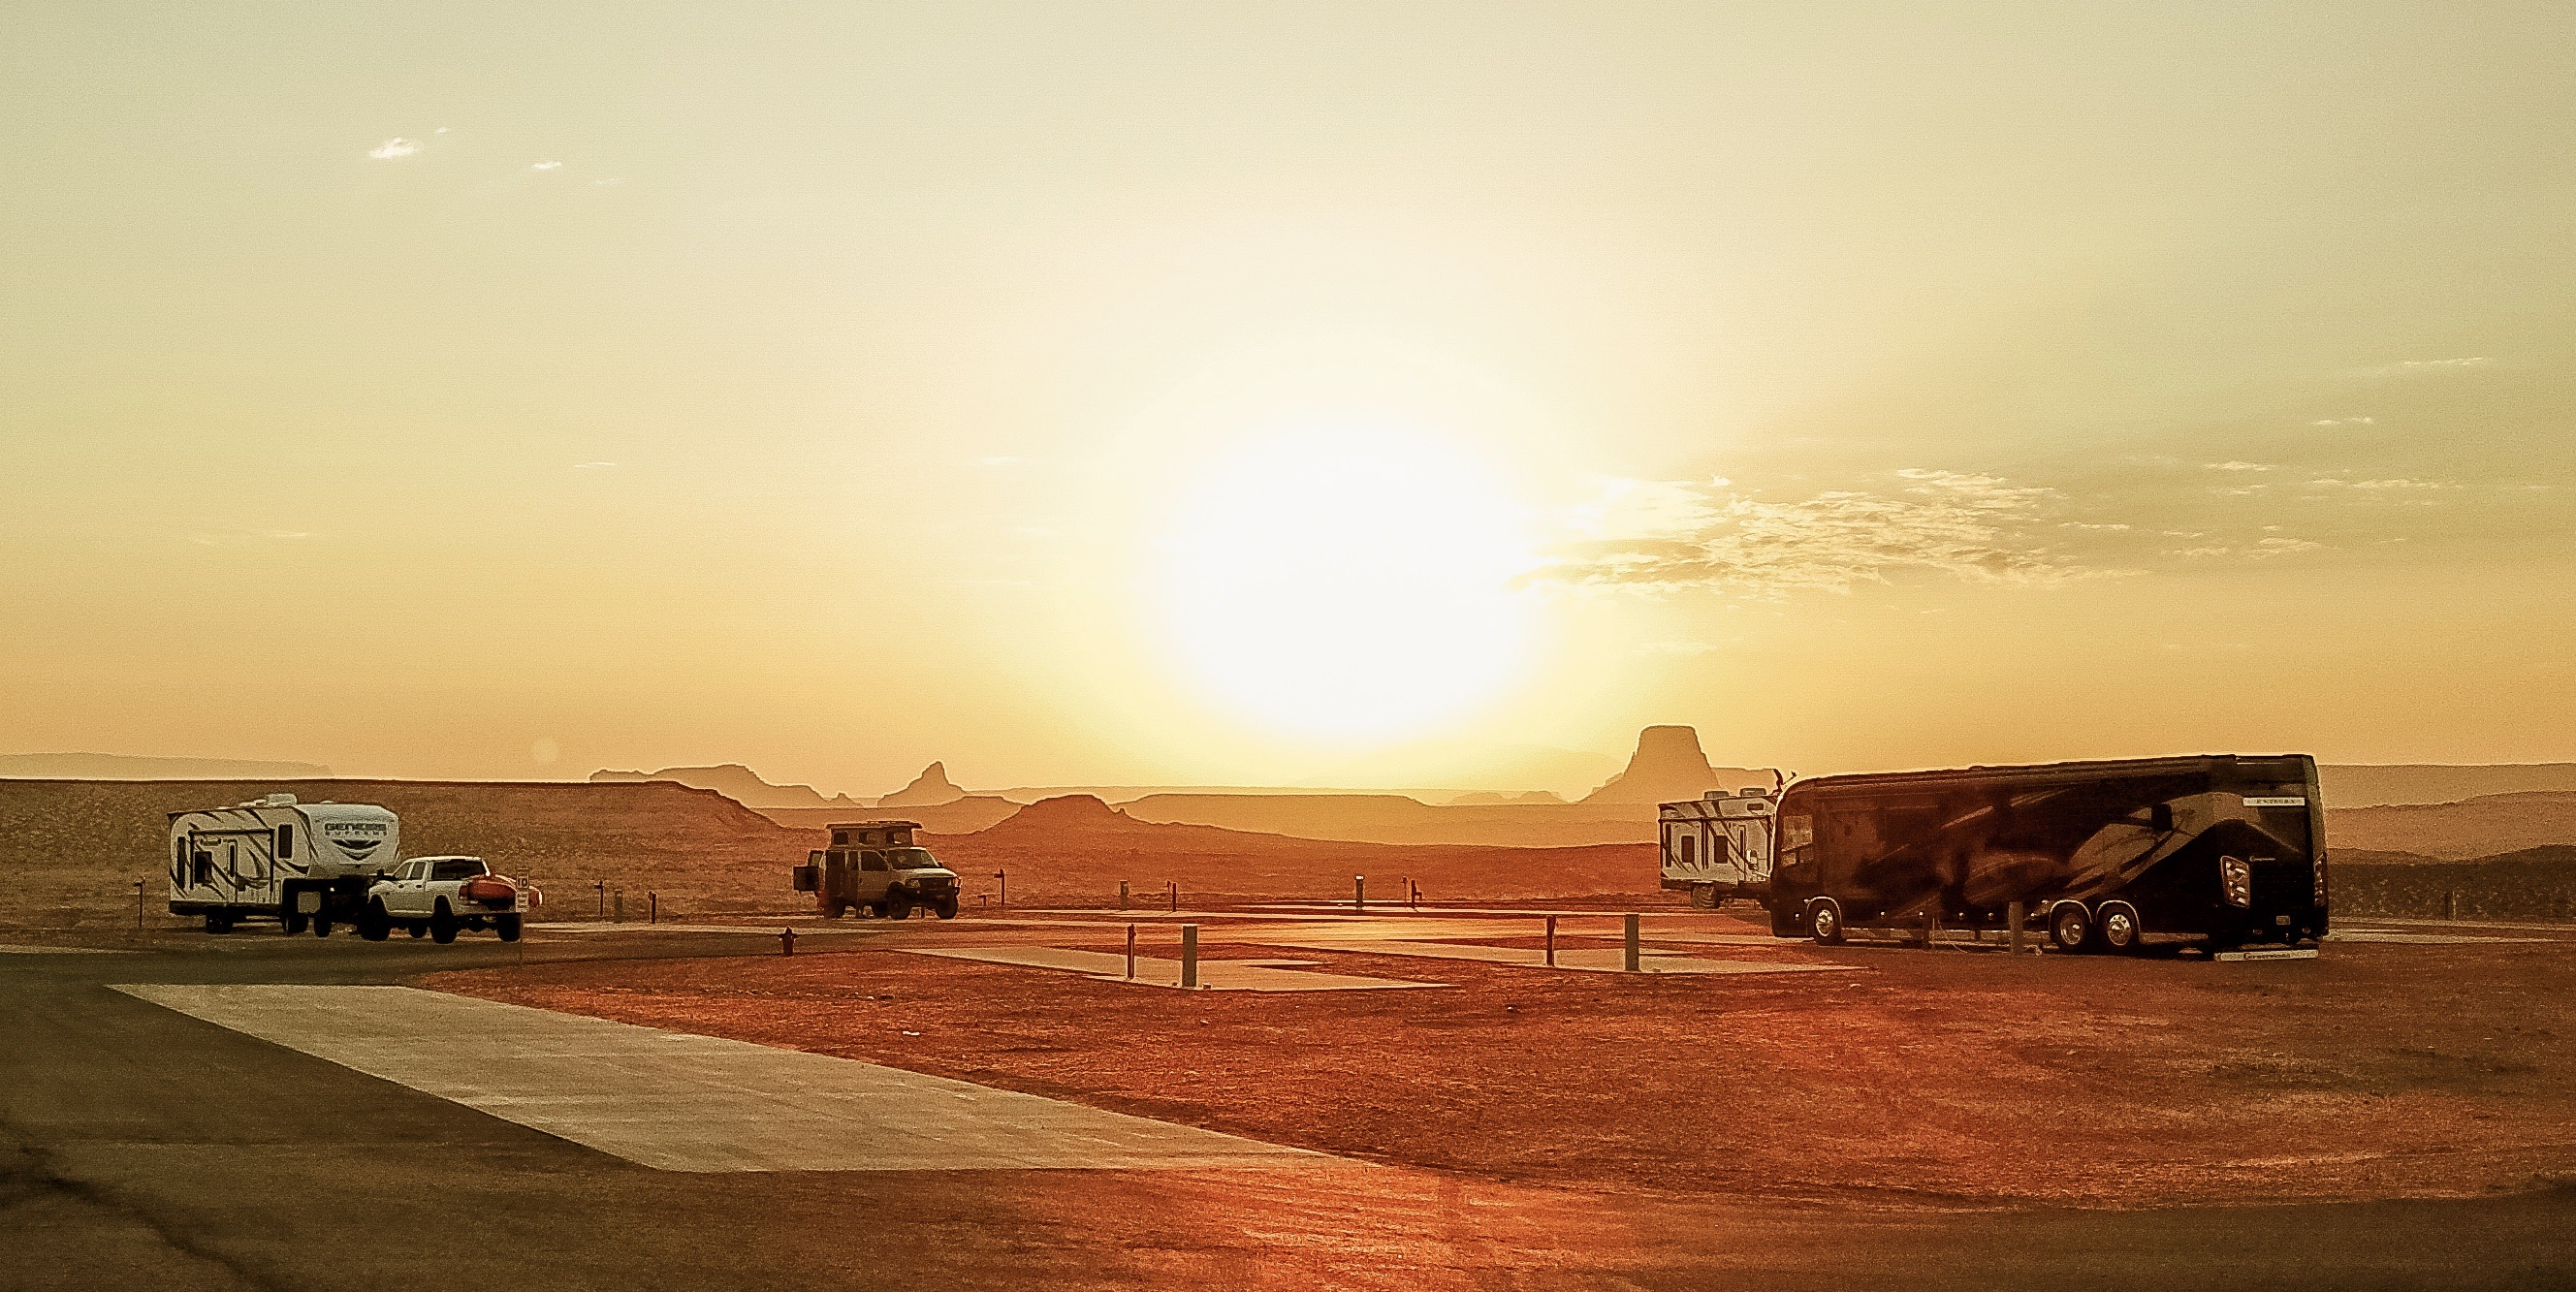 RVs parked on campsites against a desert sunset.